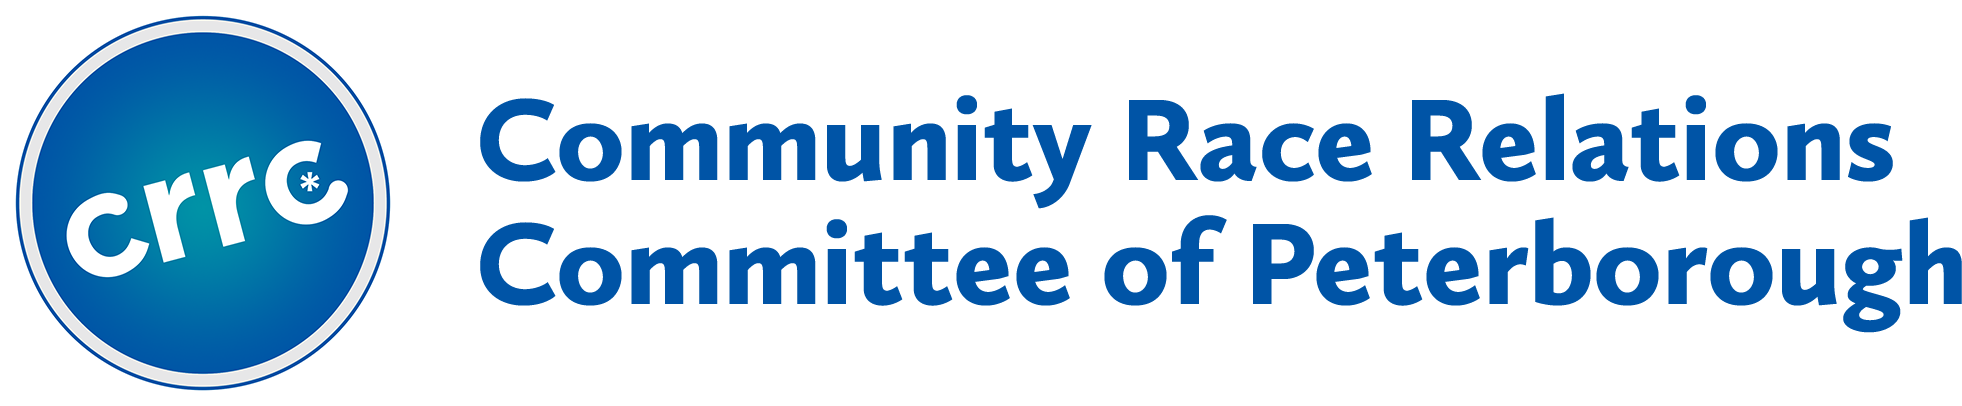 Community Race Relations Committee